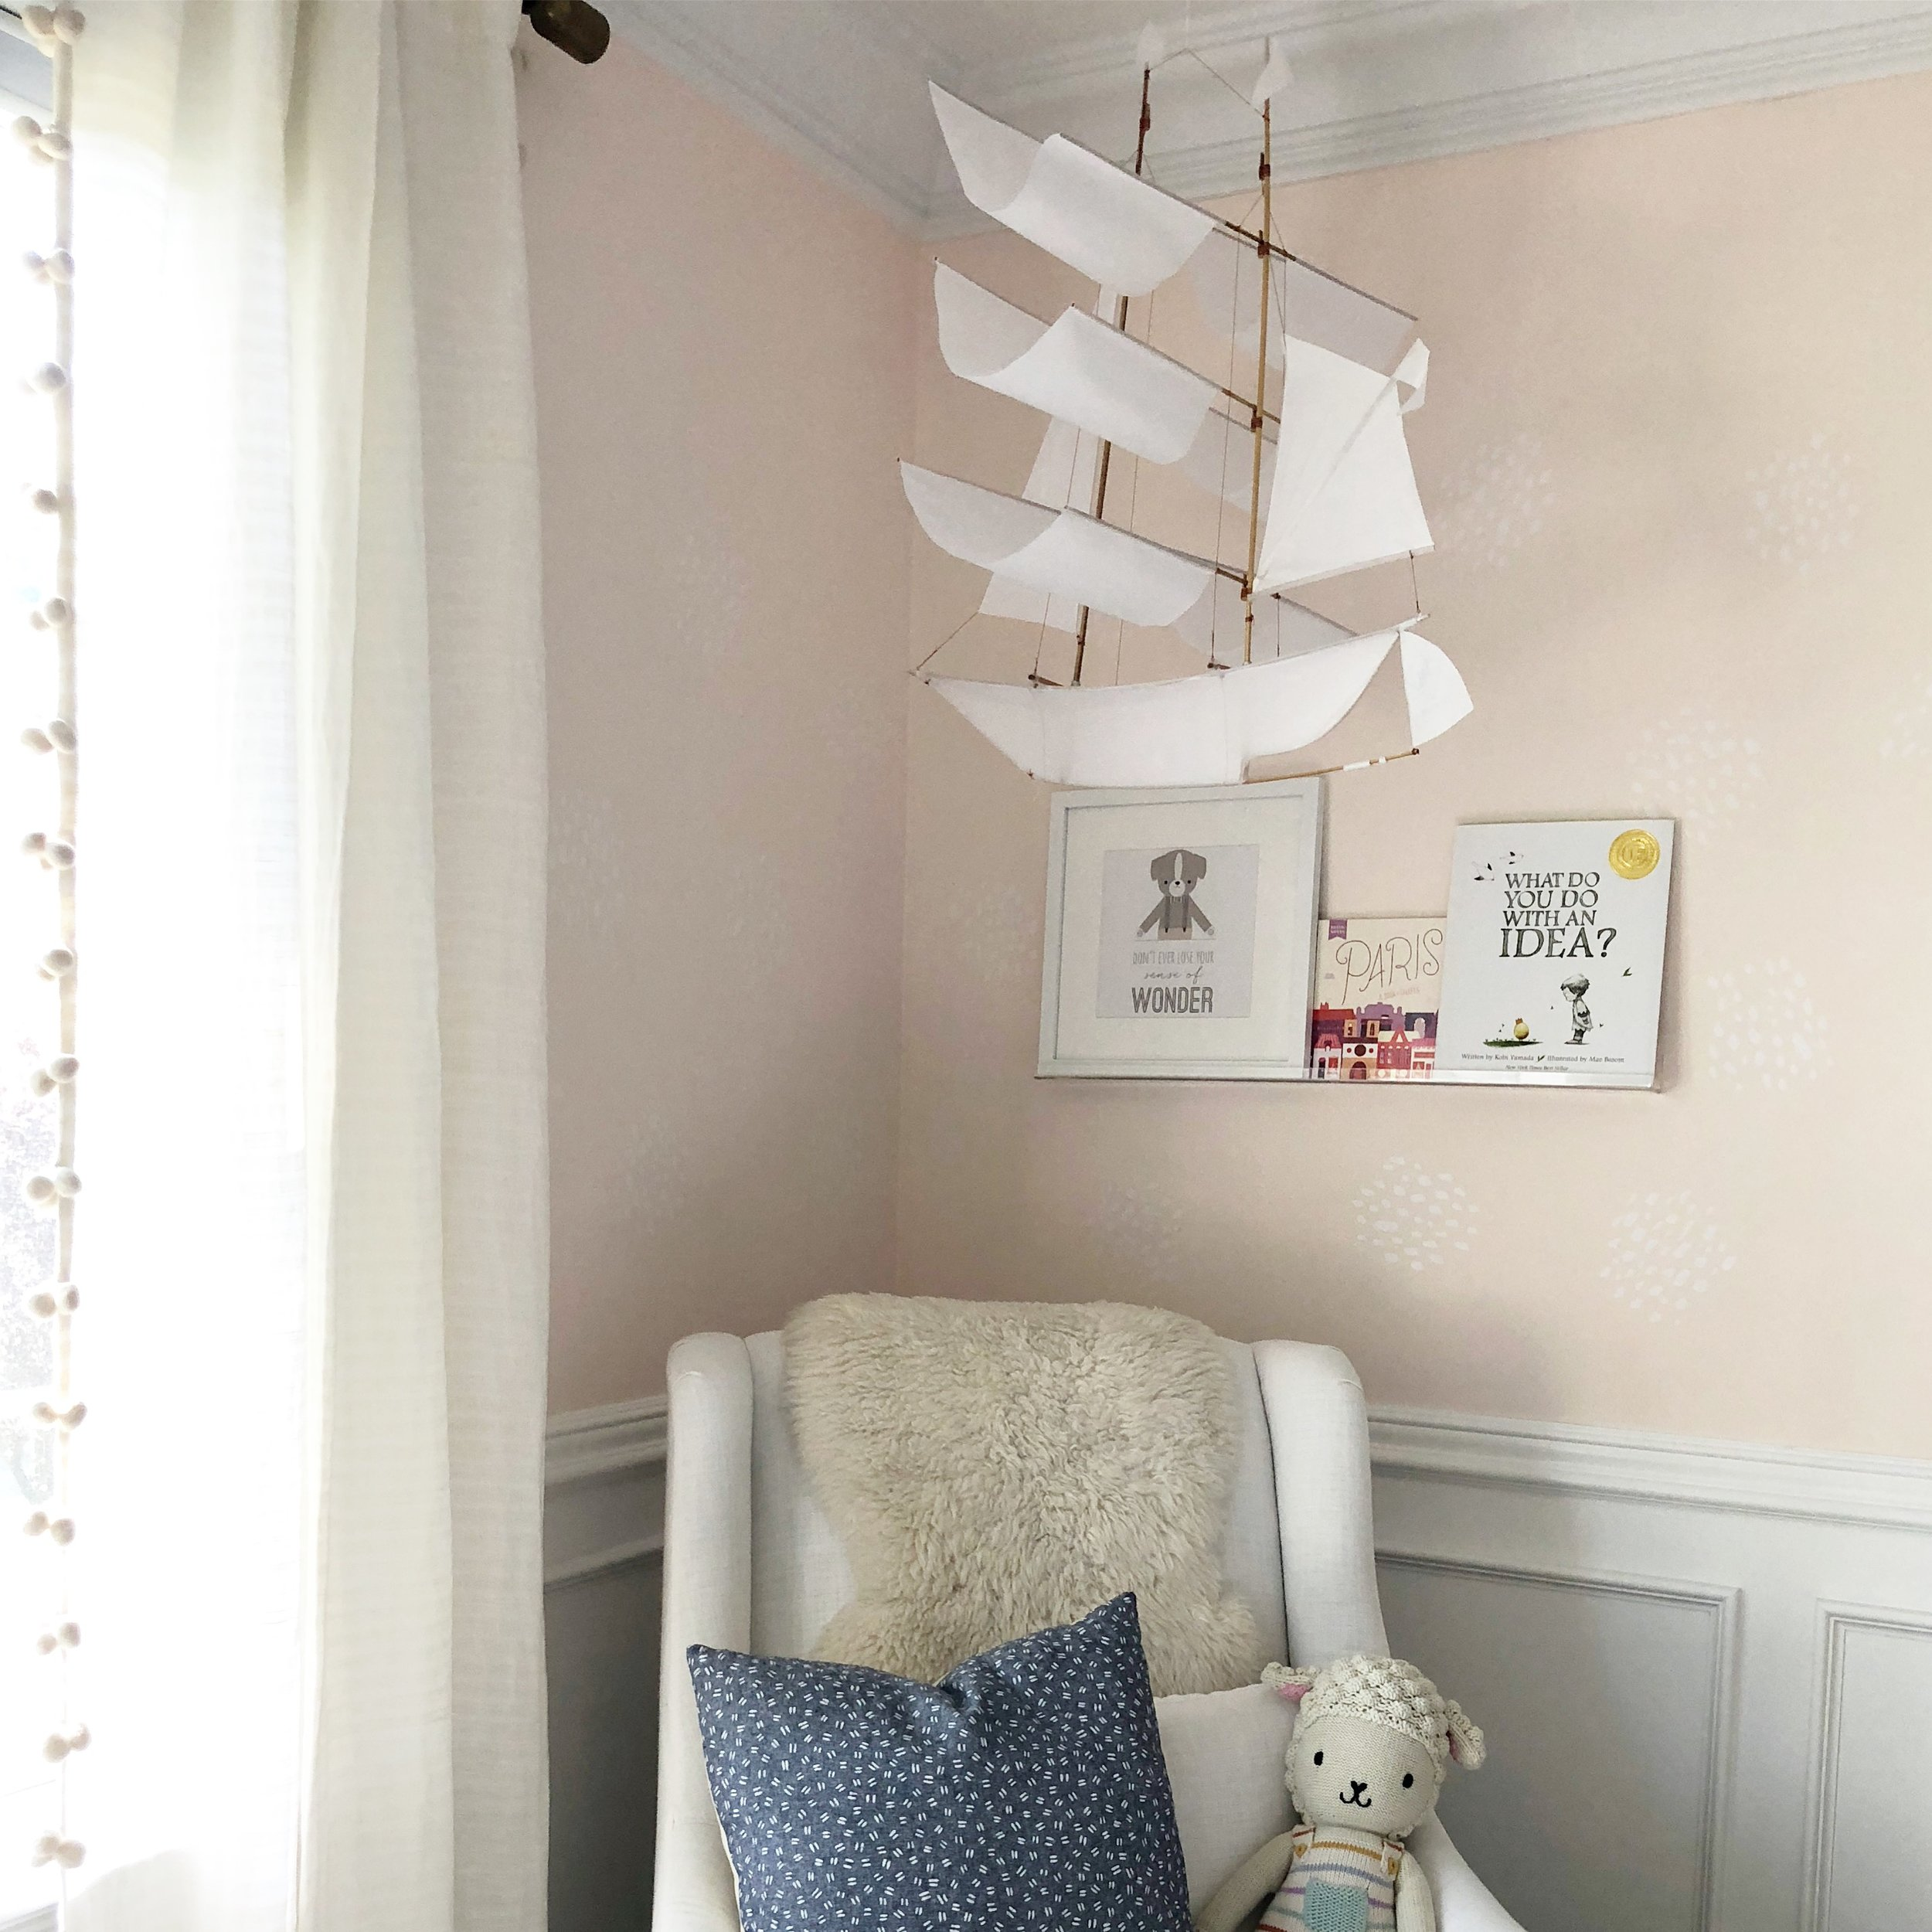 To cozy up this corner, I hung this white sailboat kite (yep, a real kite!). It's neutral and whimsical and I like that it's a unique alternative to a traditional mobile.